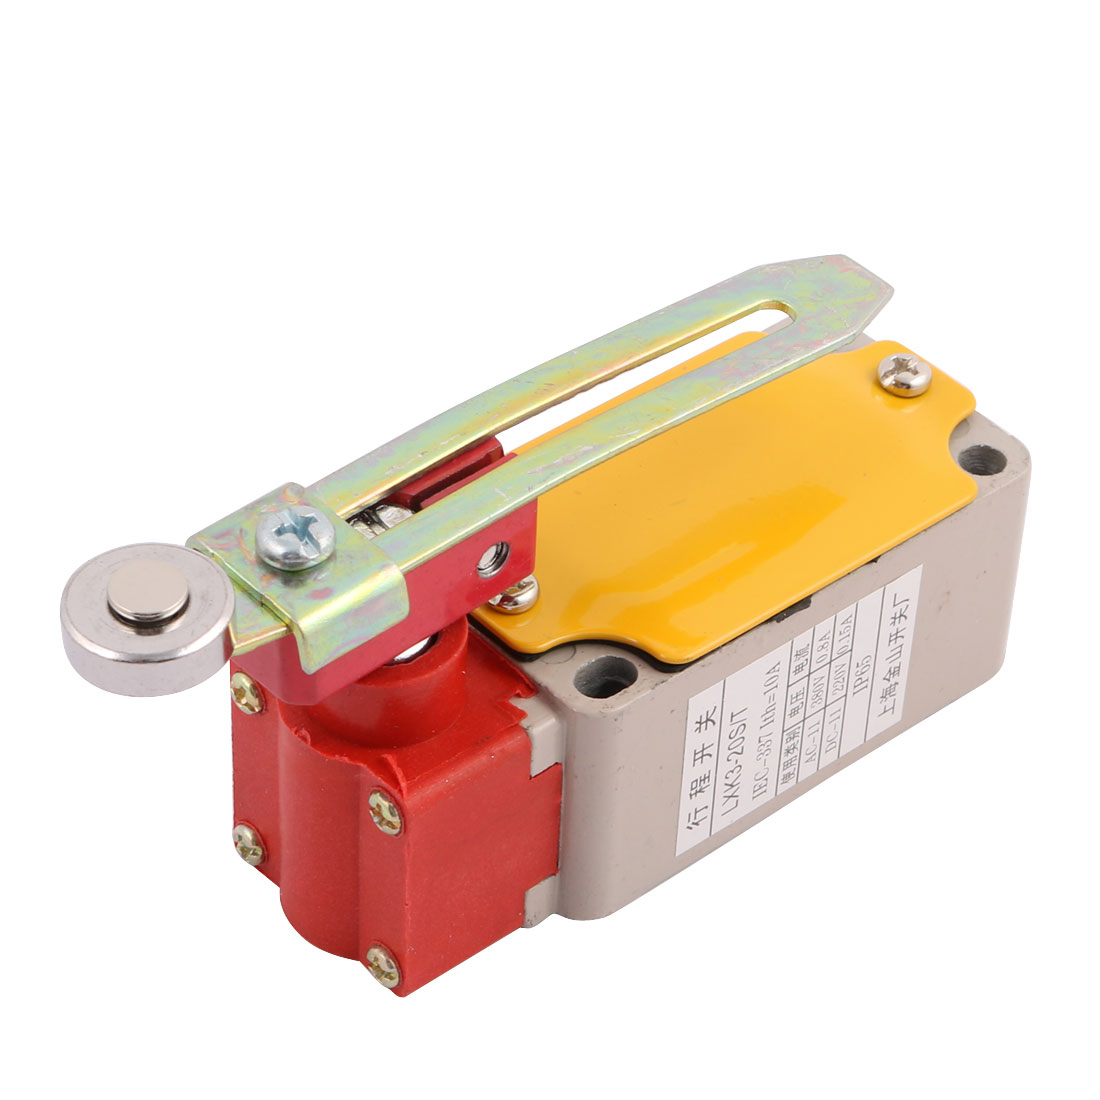 LSK3-20S/T Momentary Enclosed Limit Switch w Adjustable Roller Lever Arm